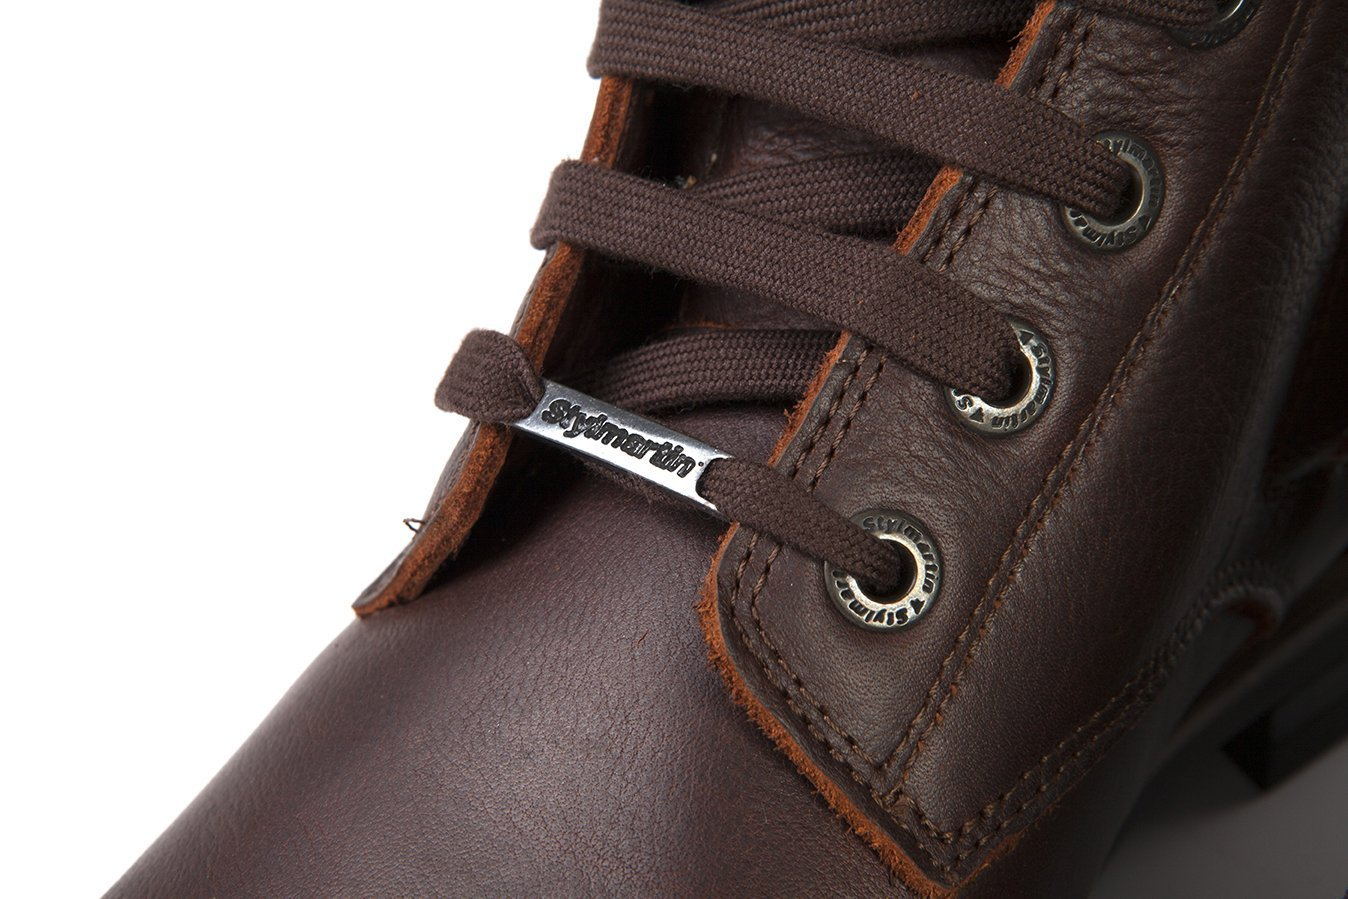 Stylmartin - Stylmartin Ace Urban in Brown - Boots - Salt Flats Clothing